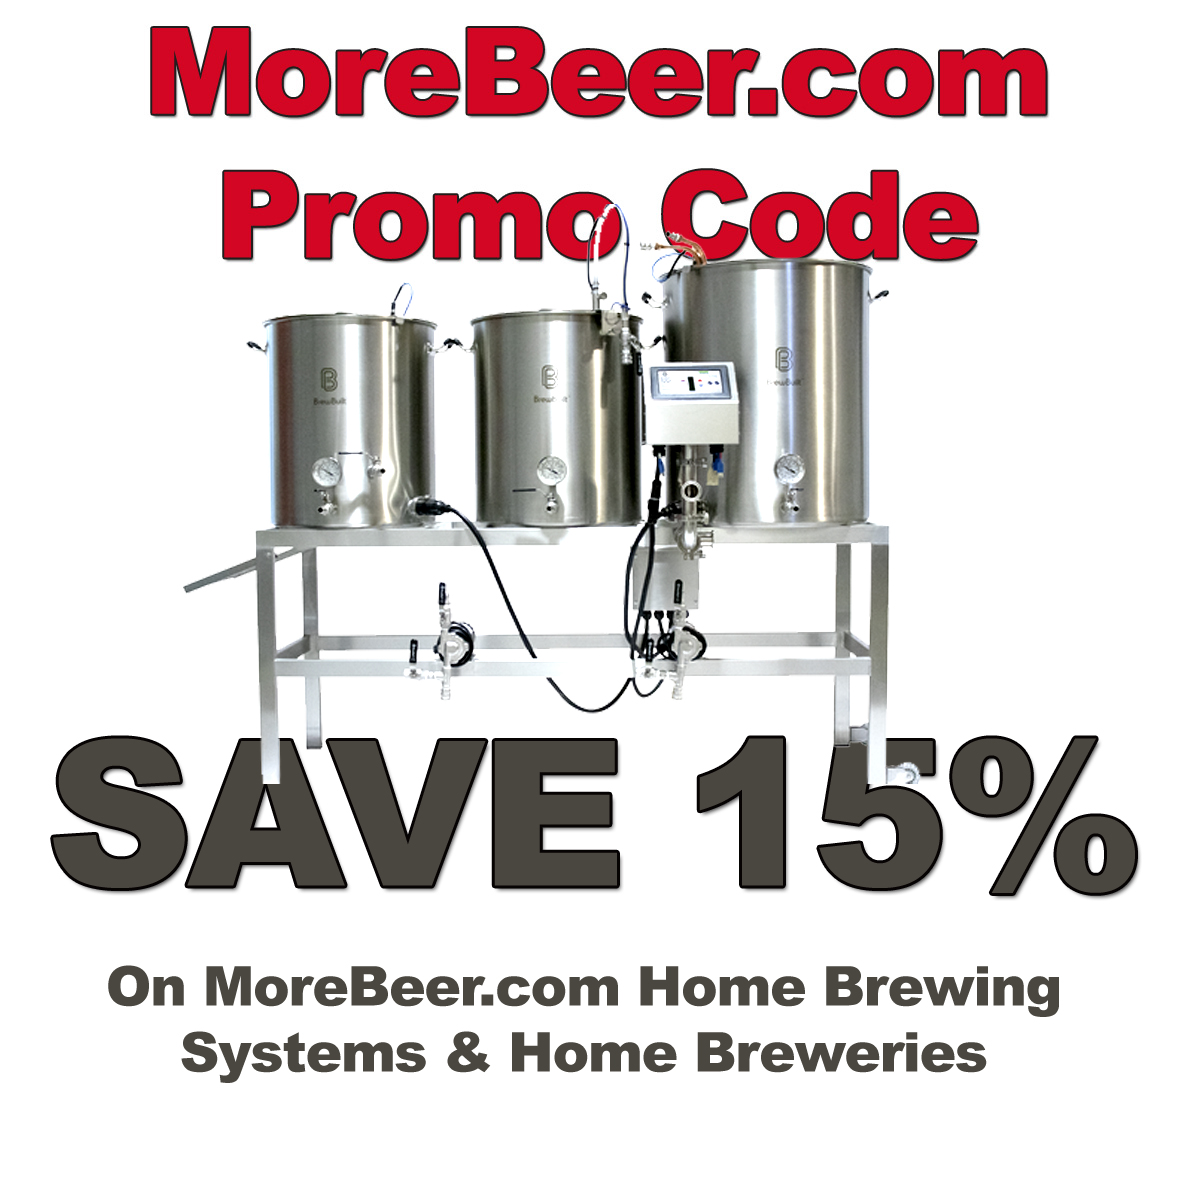 Save 15% On MoreBeer.com Brew Sculptures and Home Brewing Systems With This MoreBeer.com Coupon Code Coupon Code